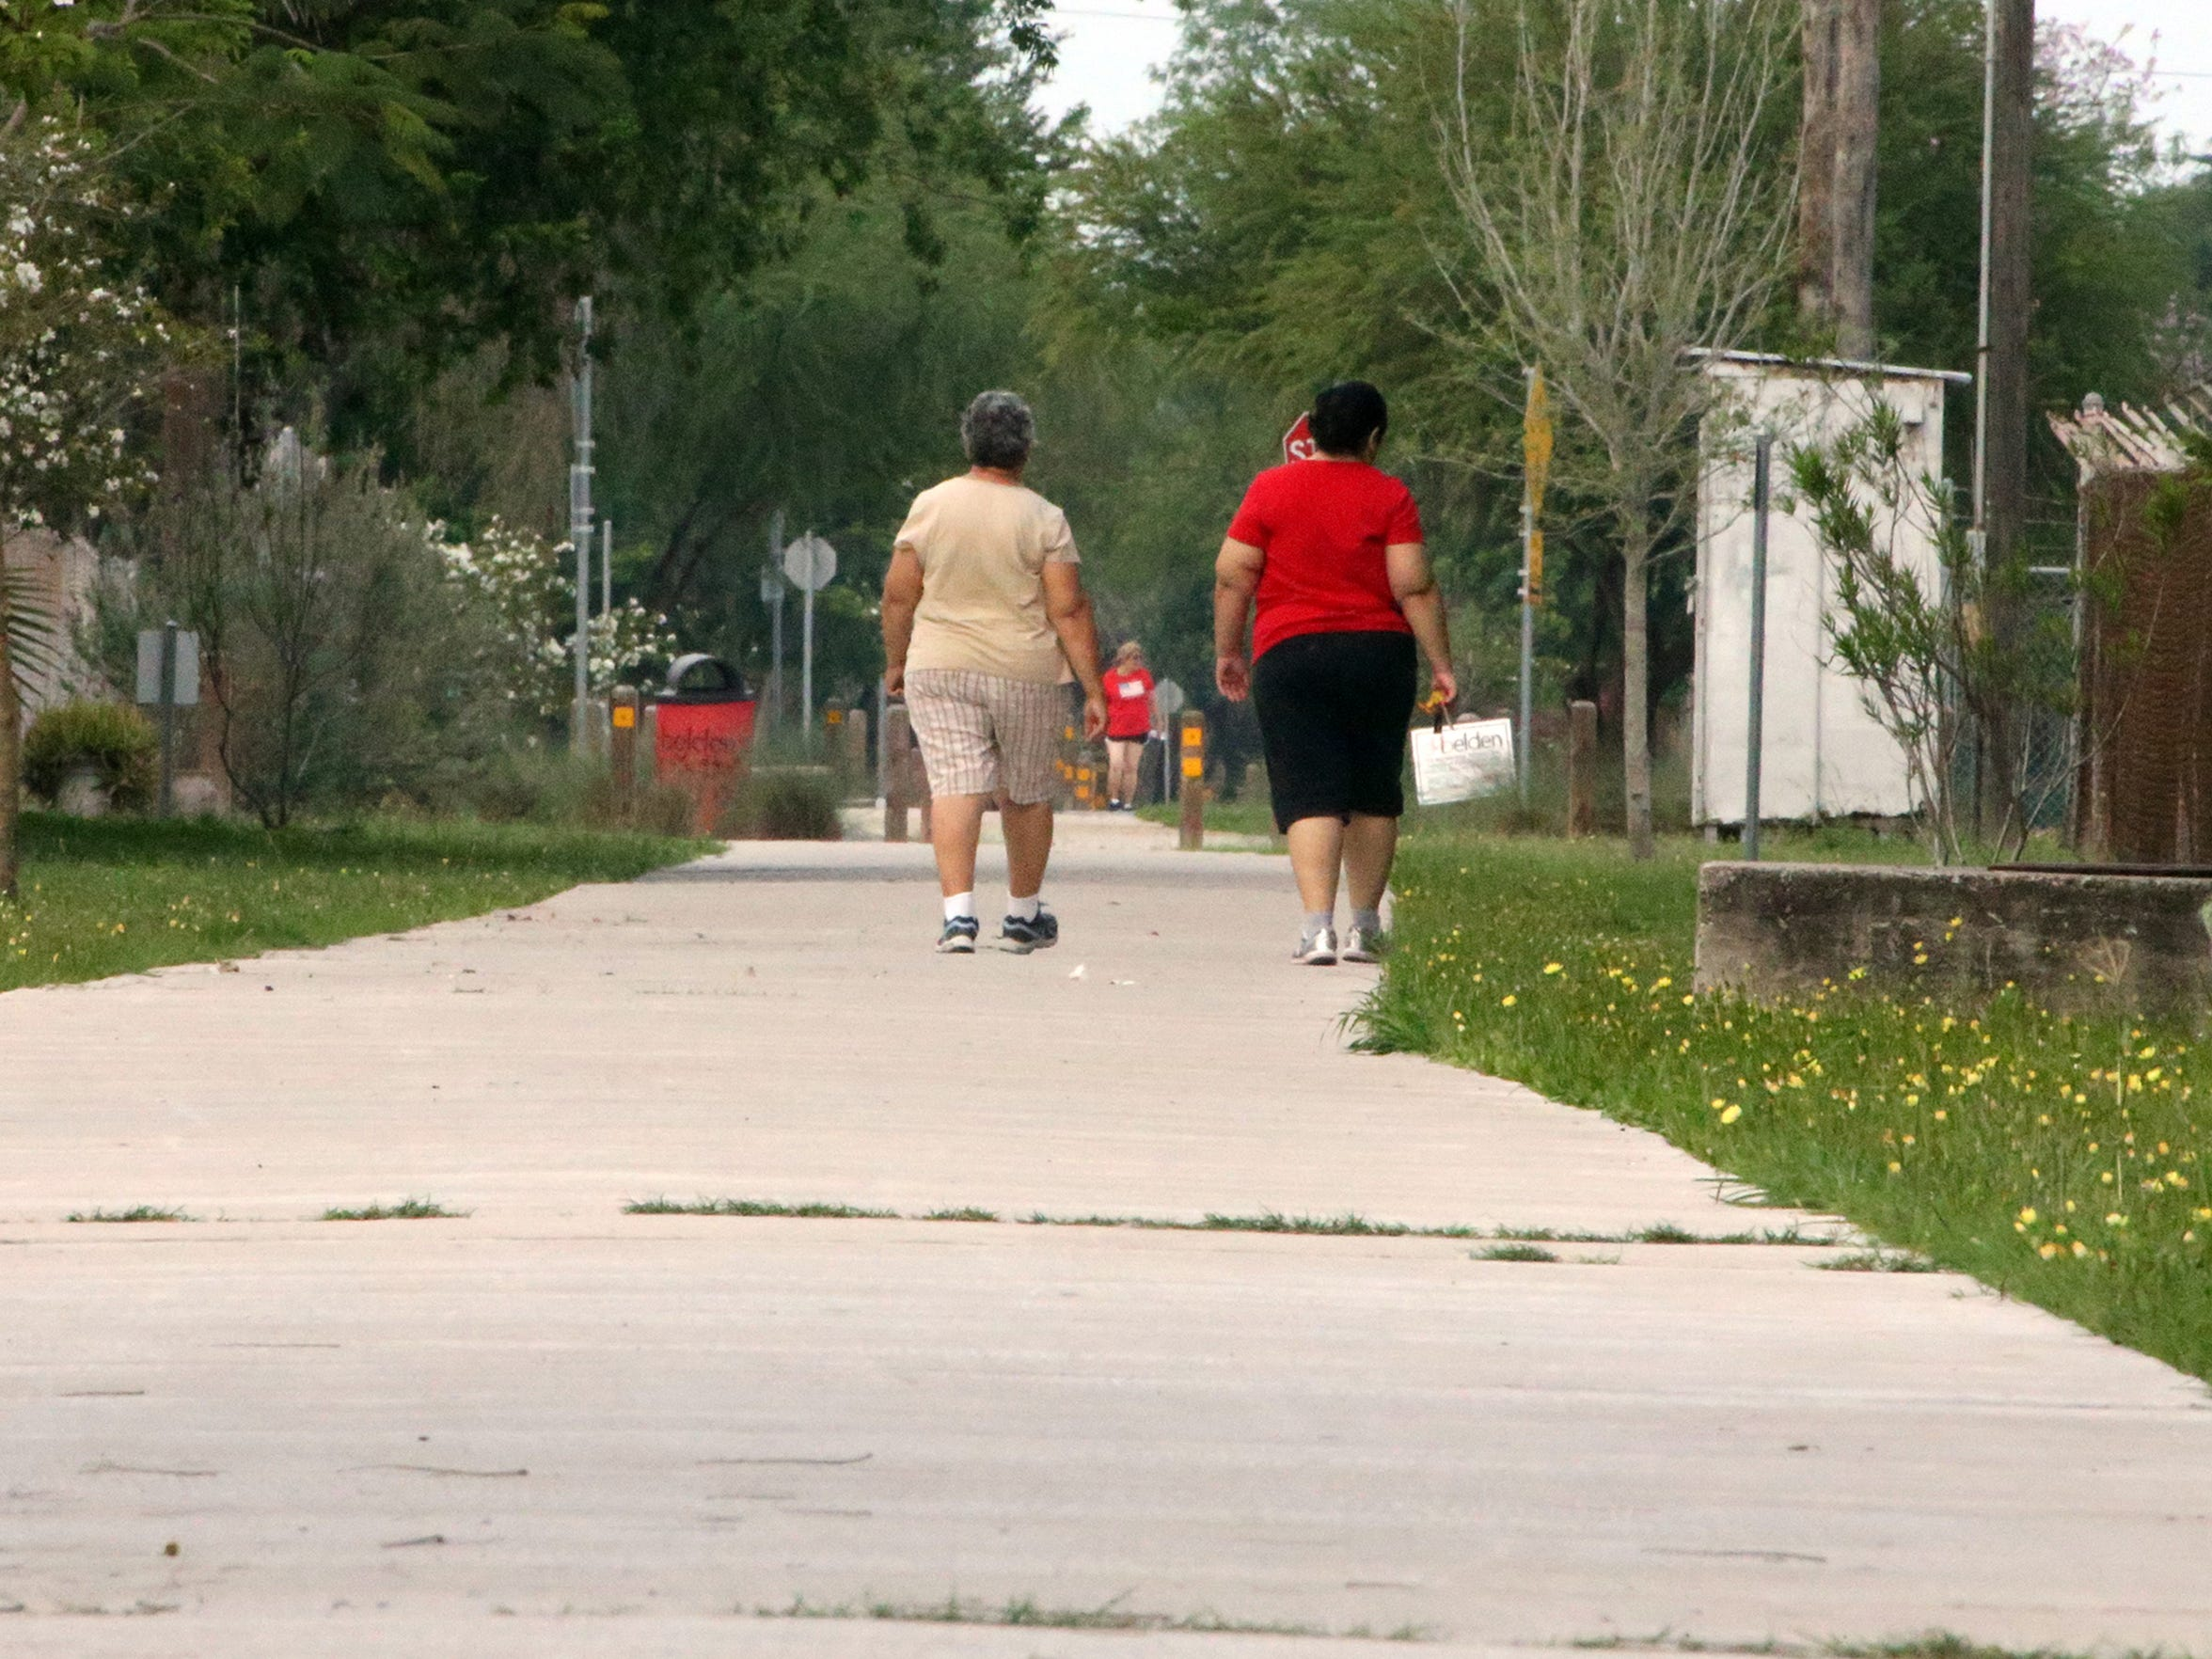 Brownsville residents go on a late afternoon walk along one of the city's pathways.